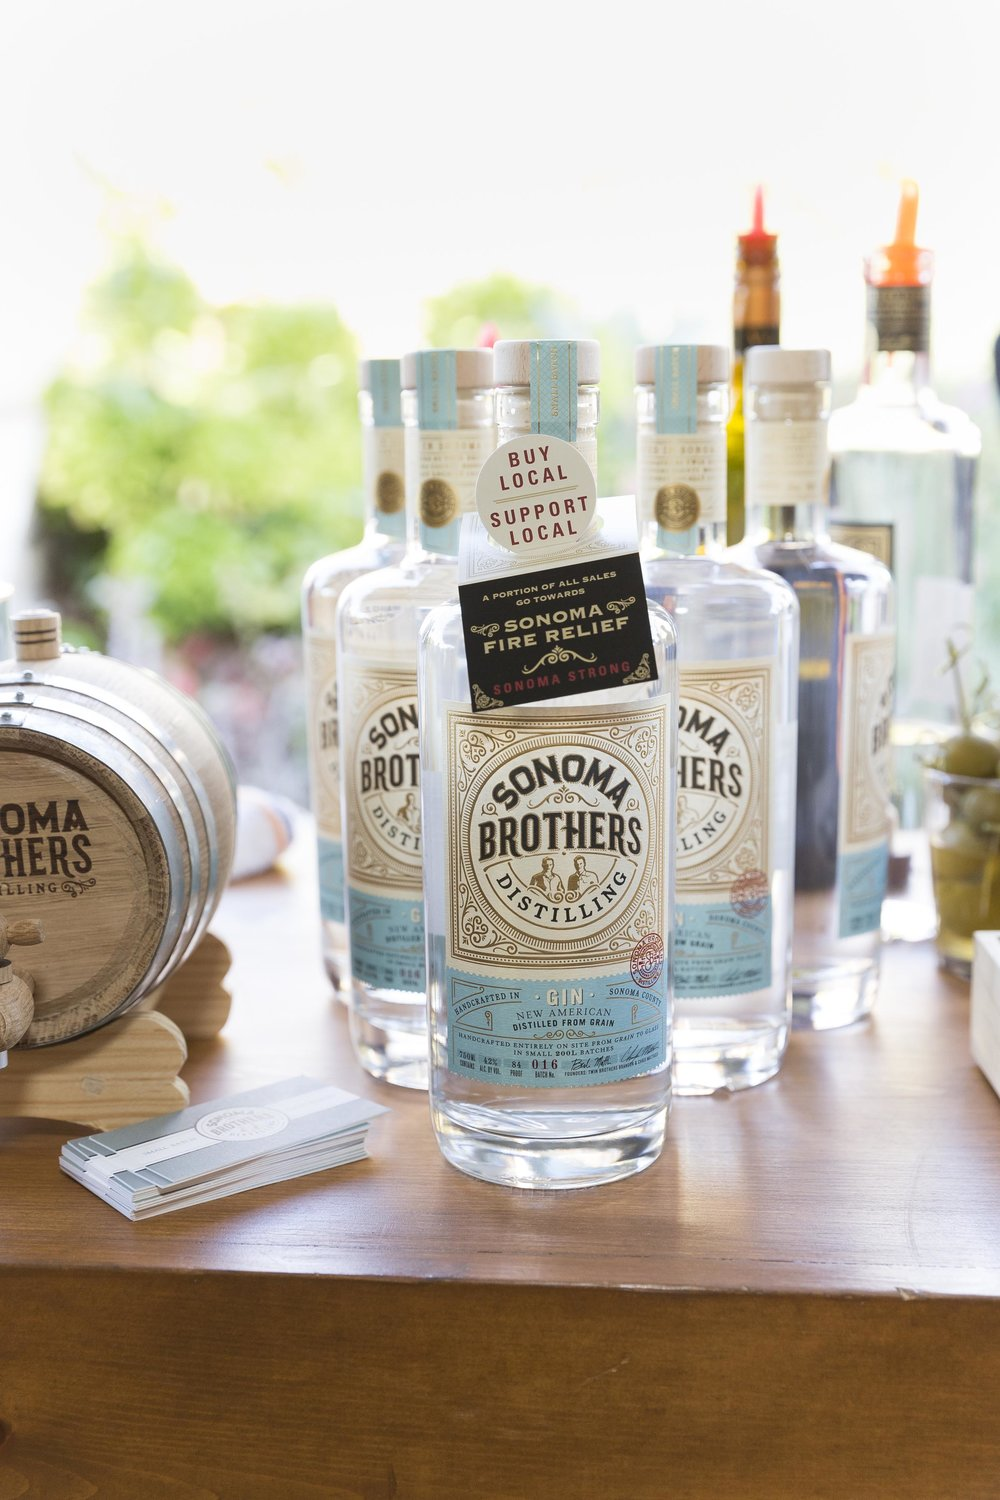 Sonoma Brothers locally distilled premium liquors.